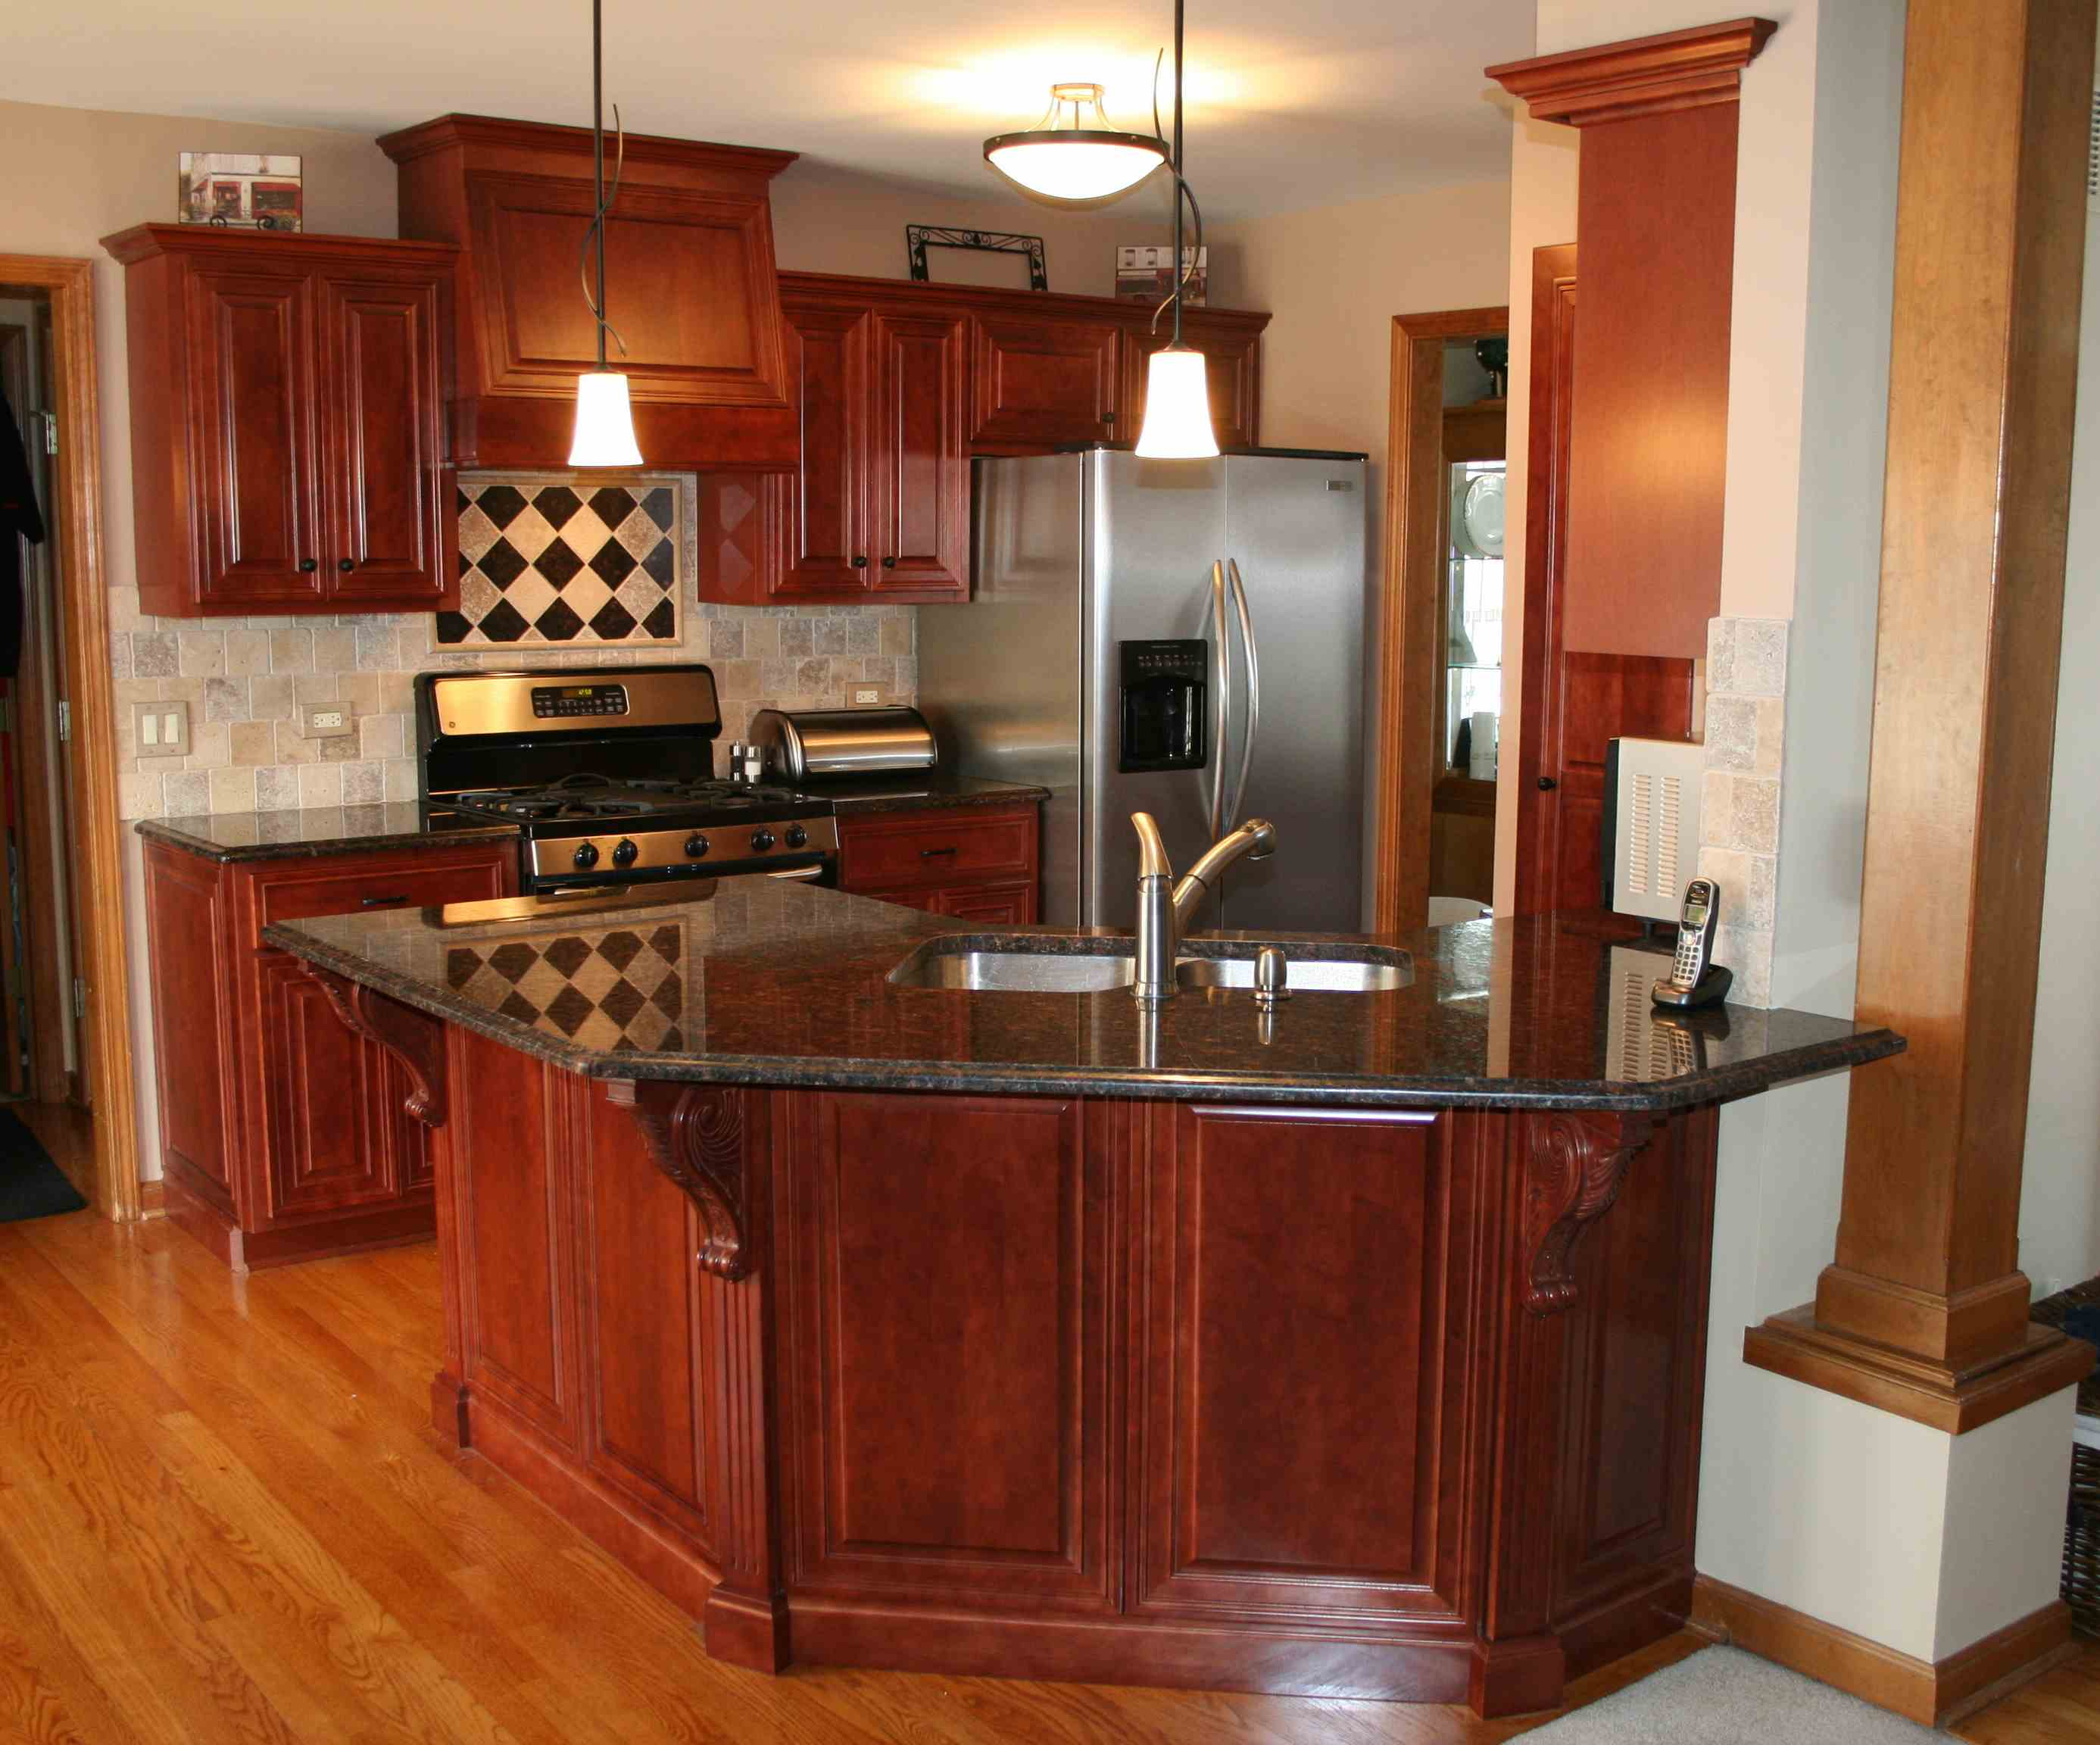 What-To-Do to Refinish Kitchen Cabinets - Artmakehome